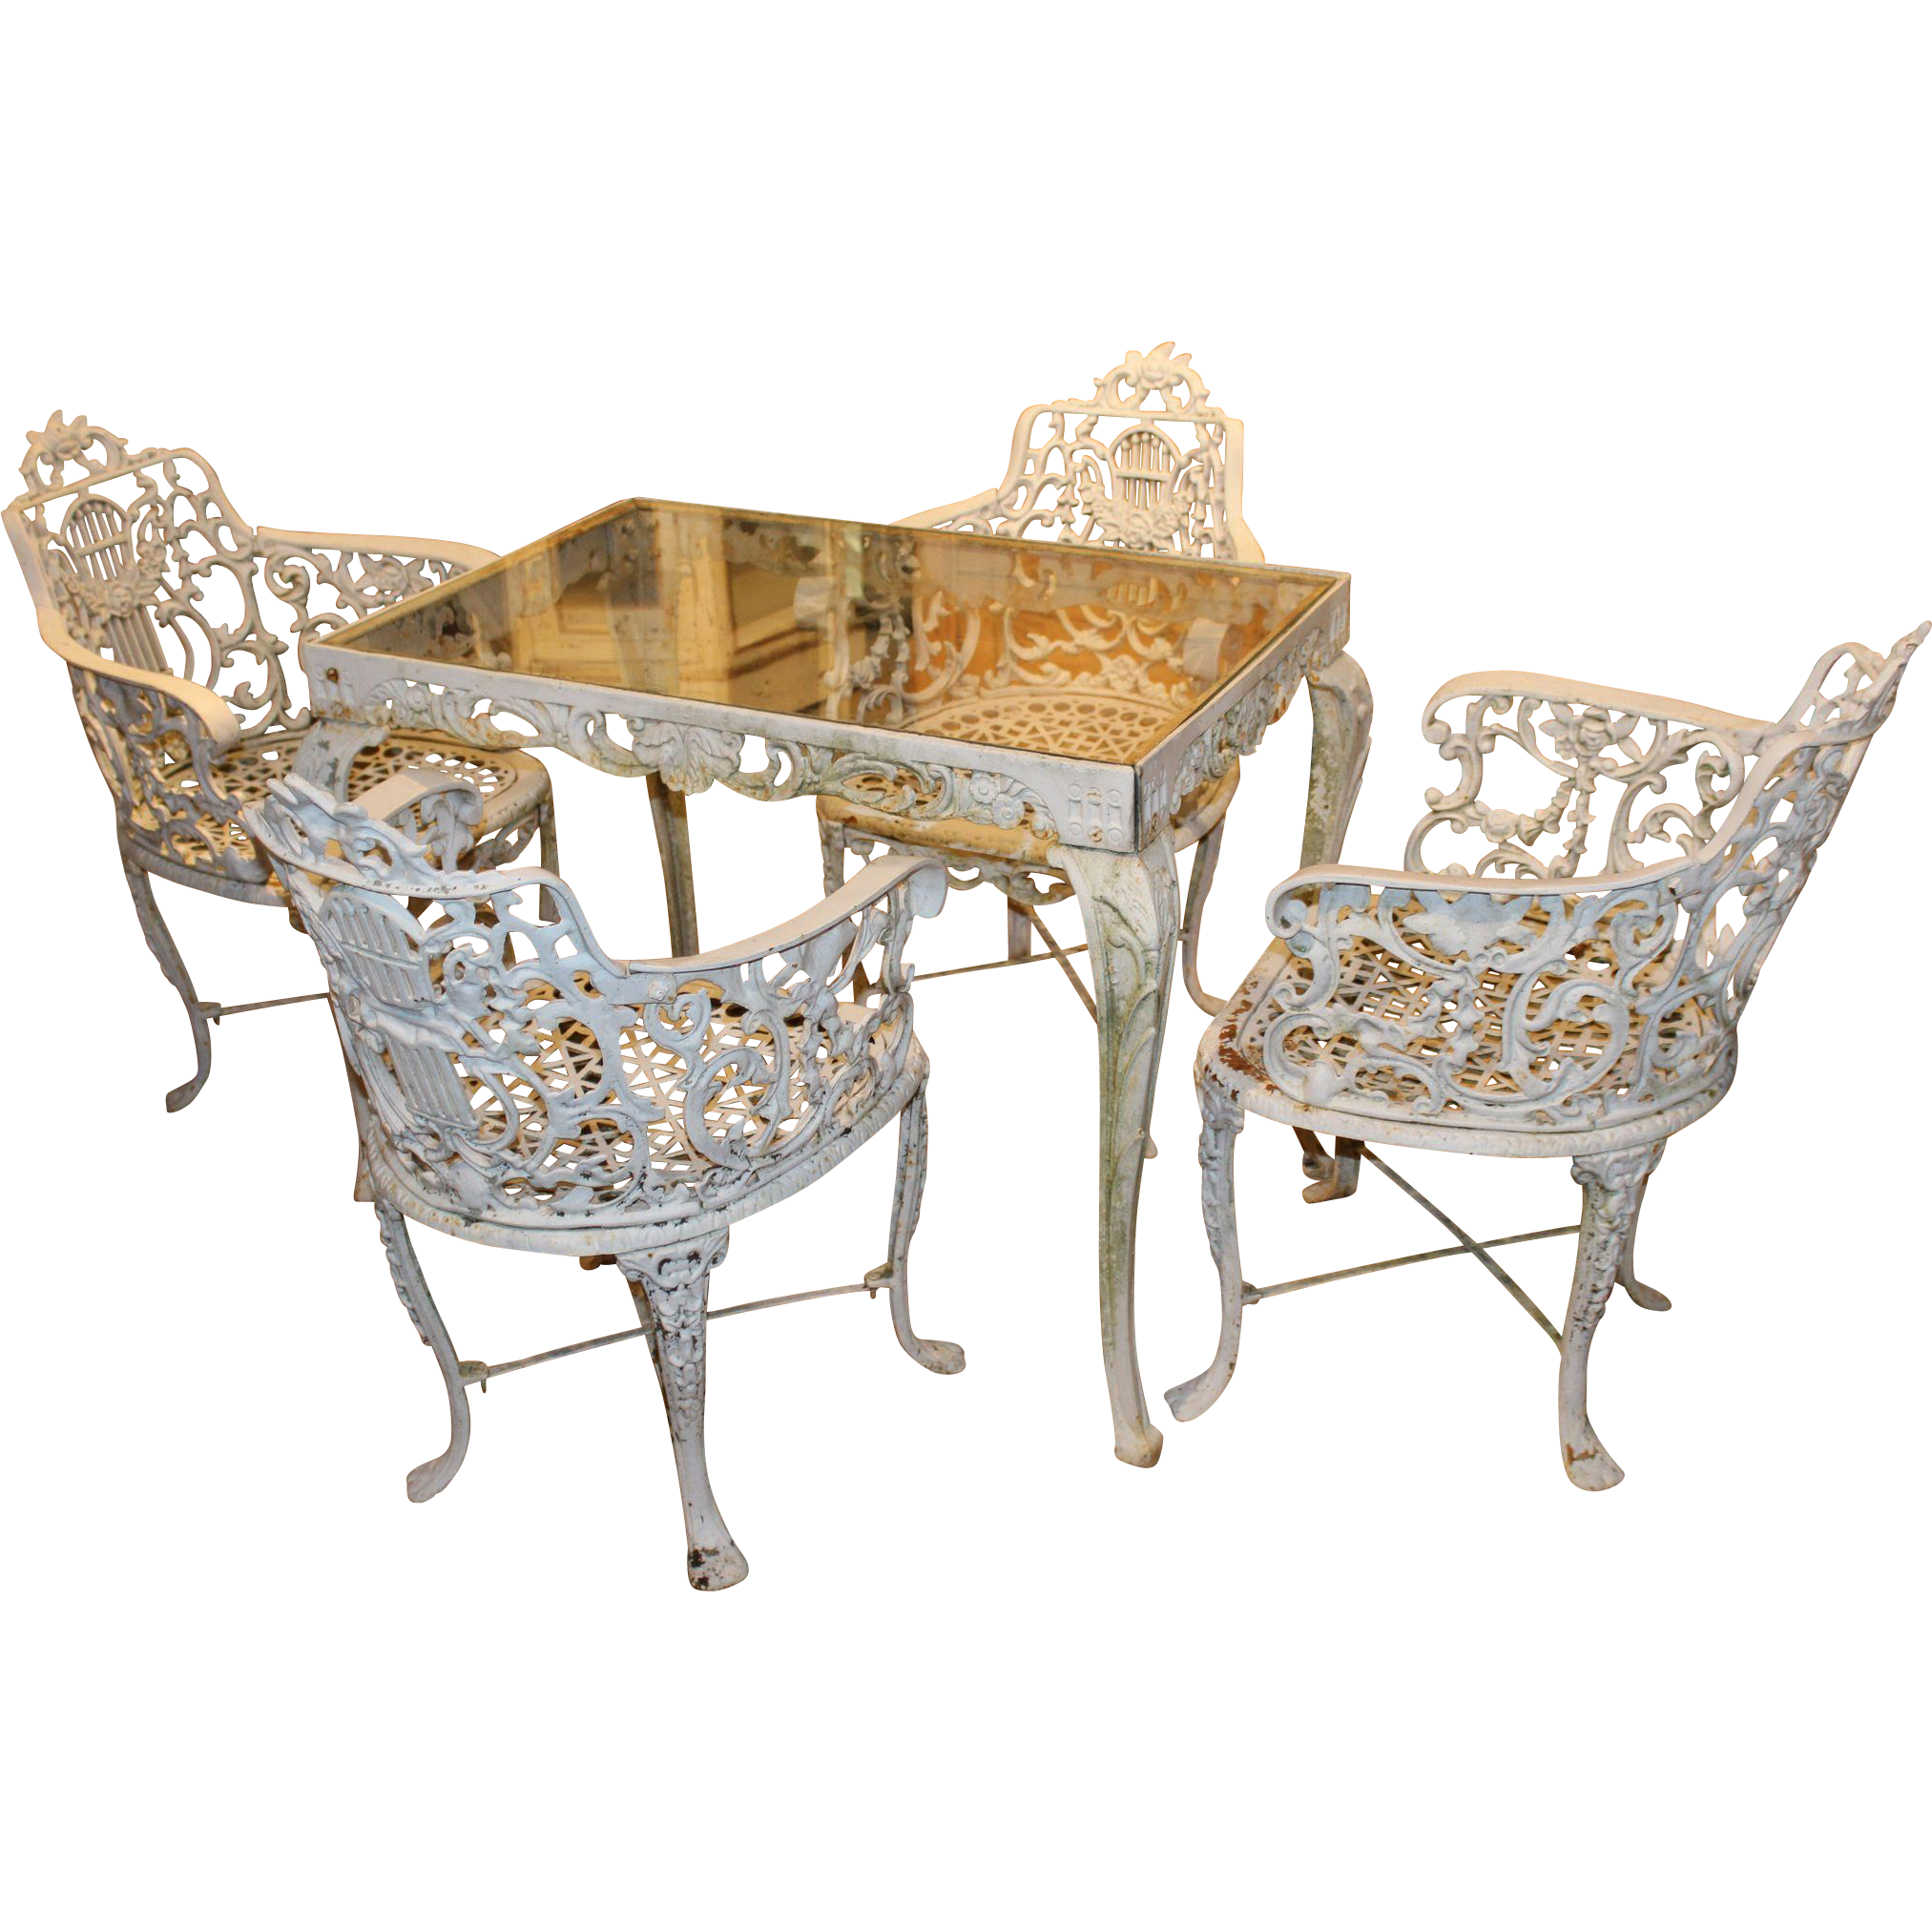 Robert wood foundry five piece victorian cast iron furniture set from nhantiquecoop on ruby lane - Advantages of wrought iron patio furniture ...